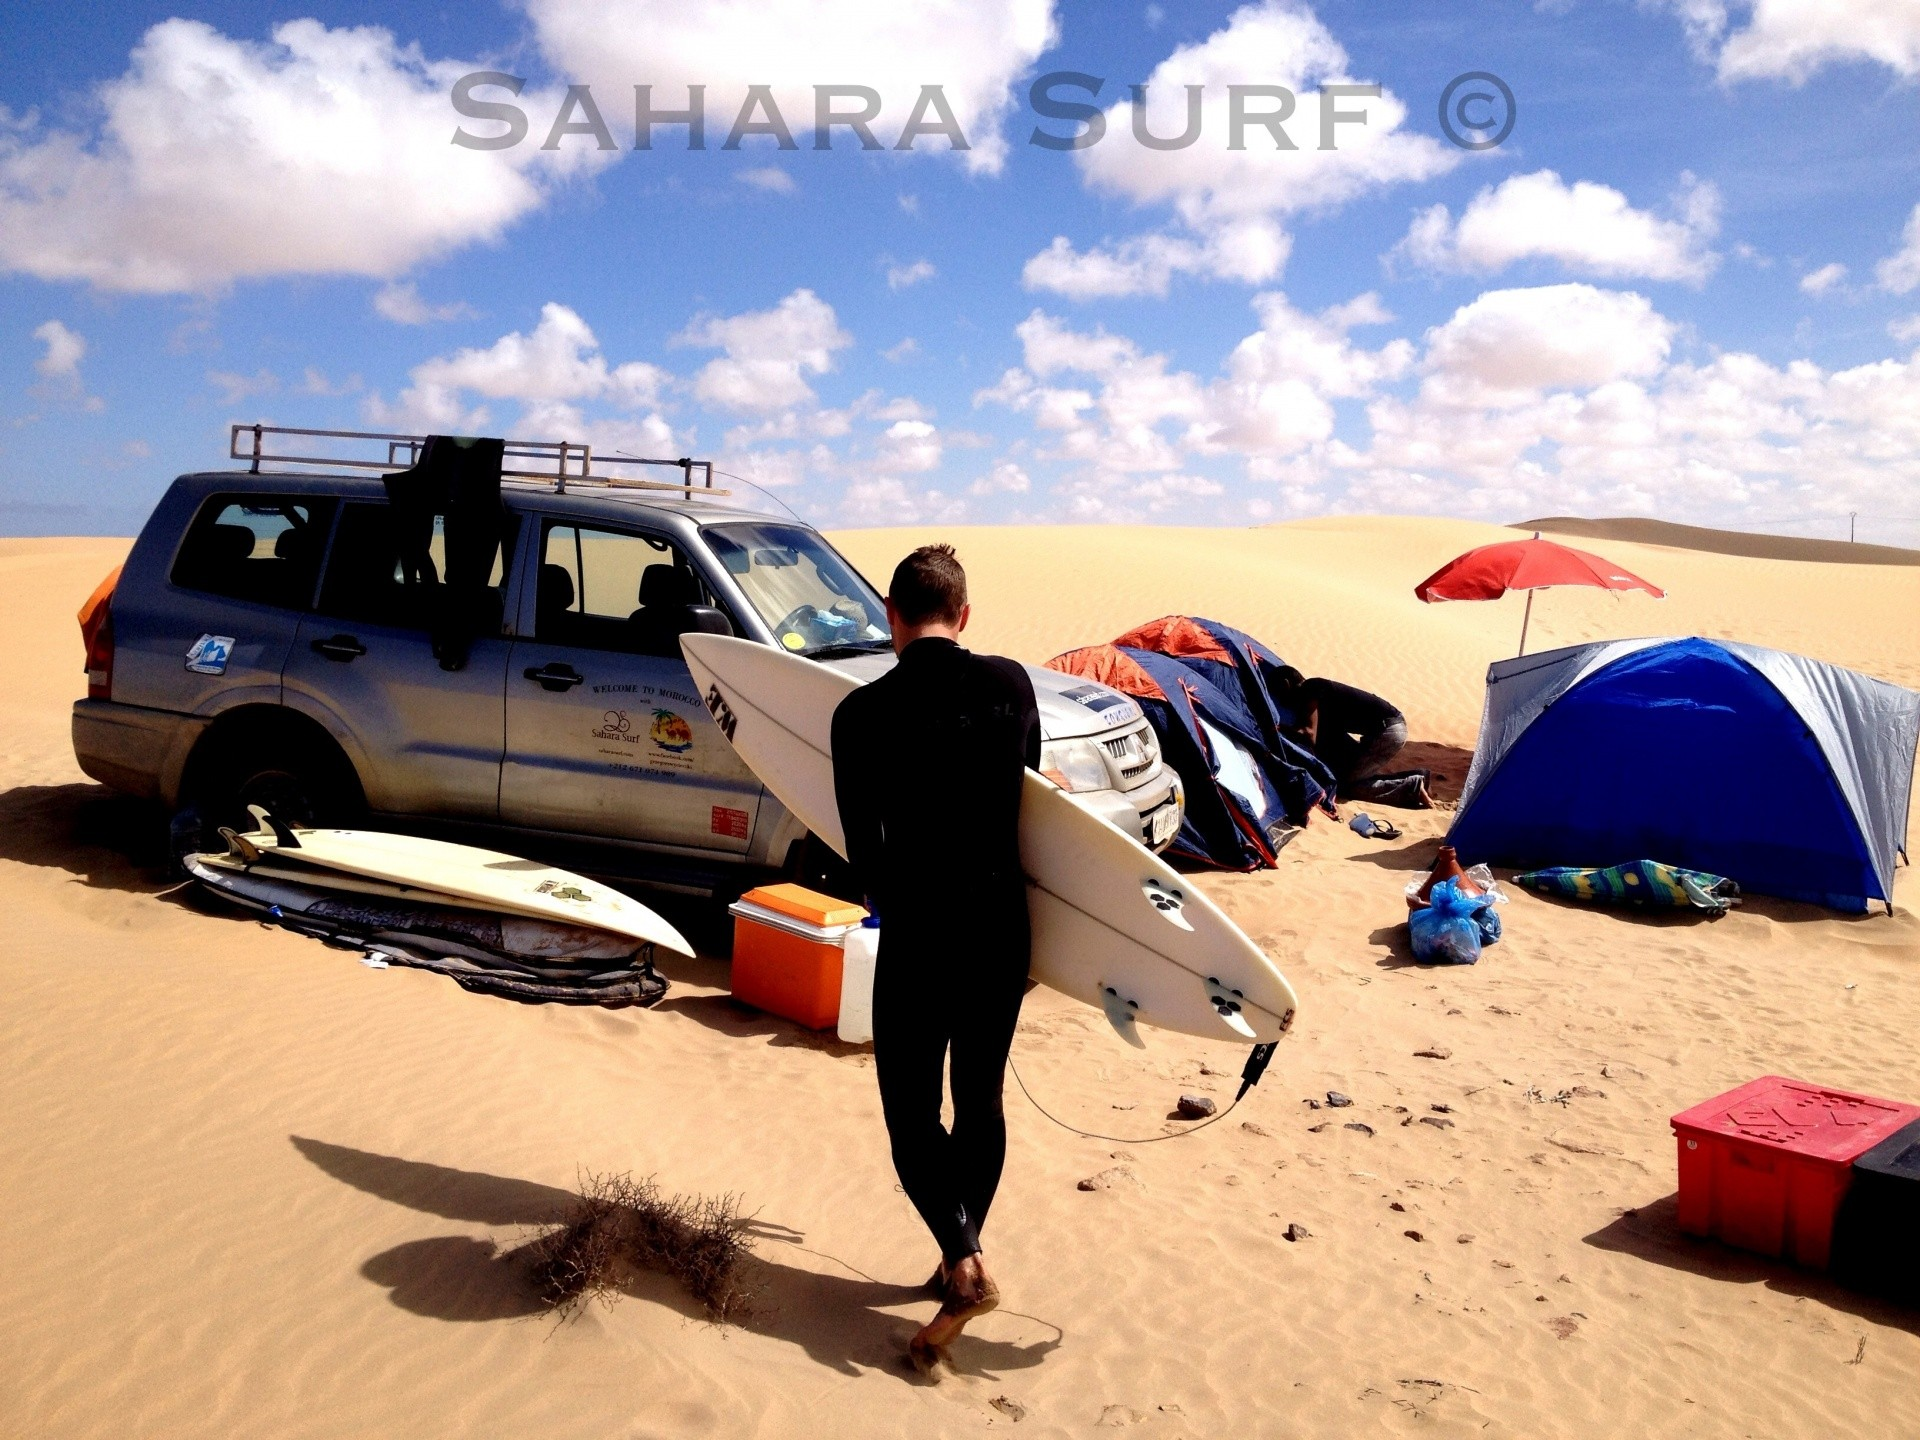 Sahara Surf's photo of Lagtoua